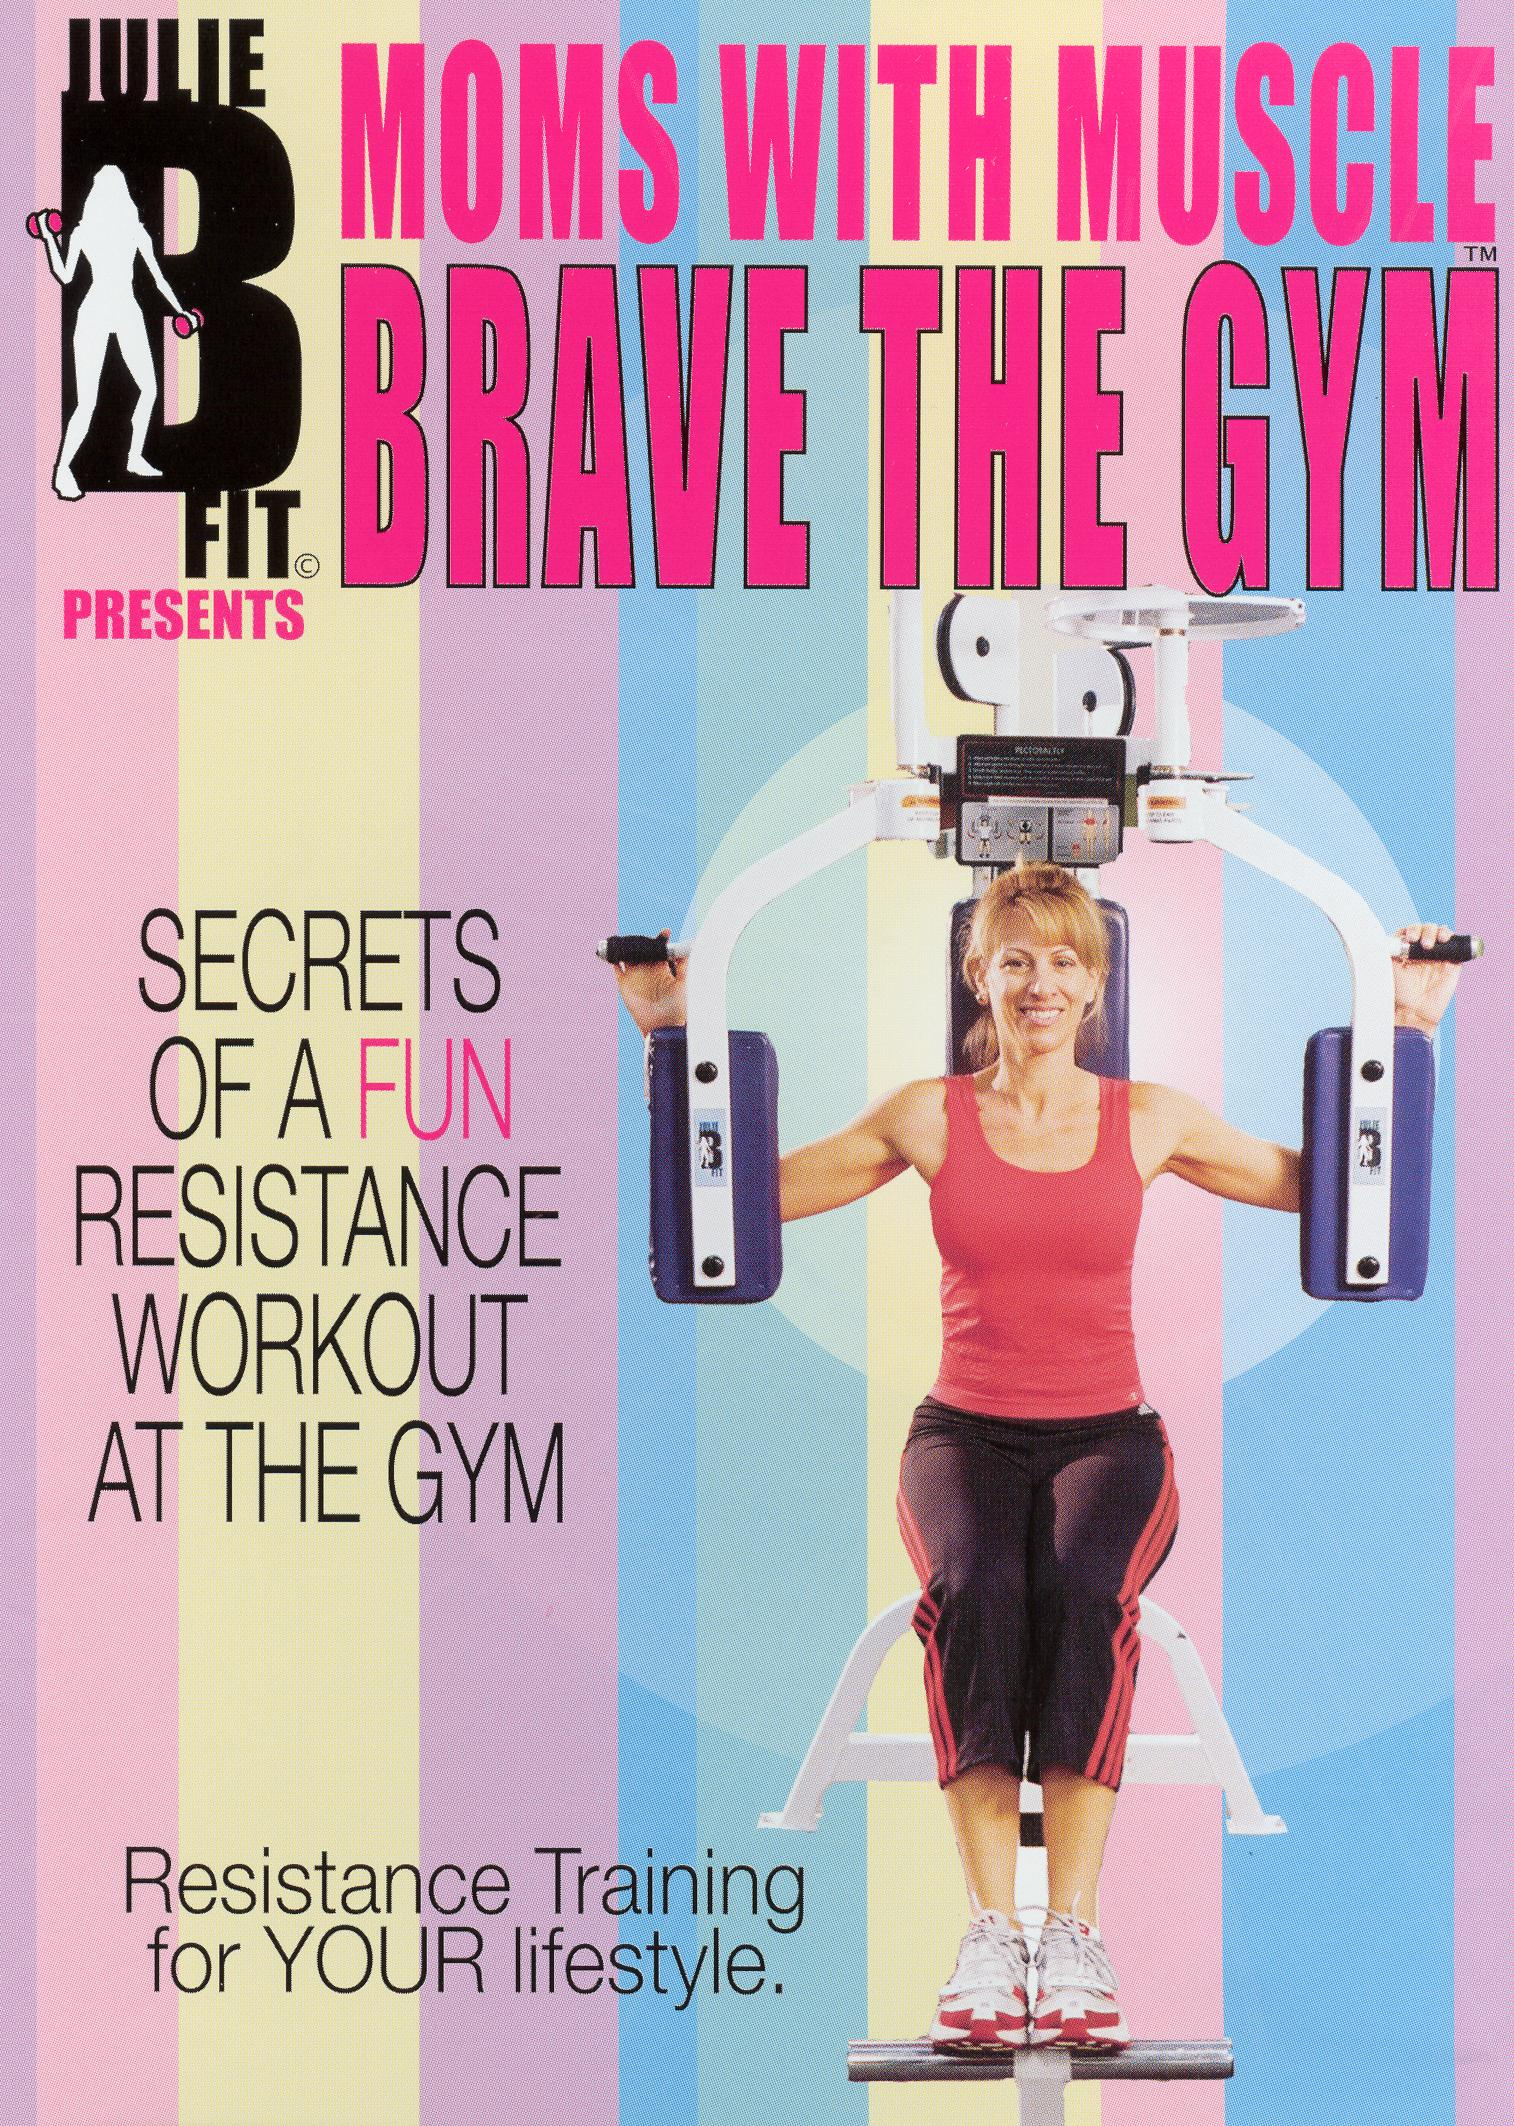 Julie B Fit Presents Moms with Muscle: Brave the Gym